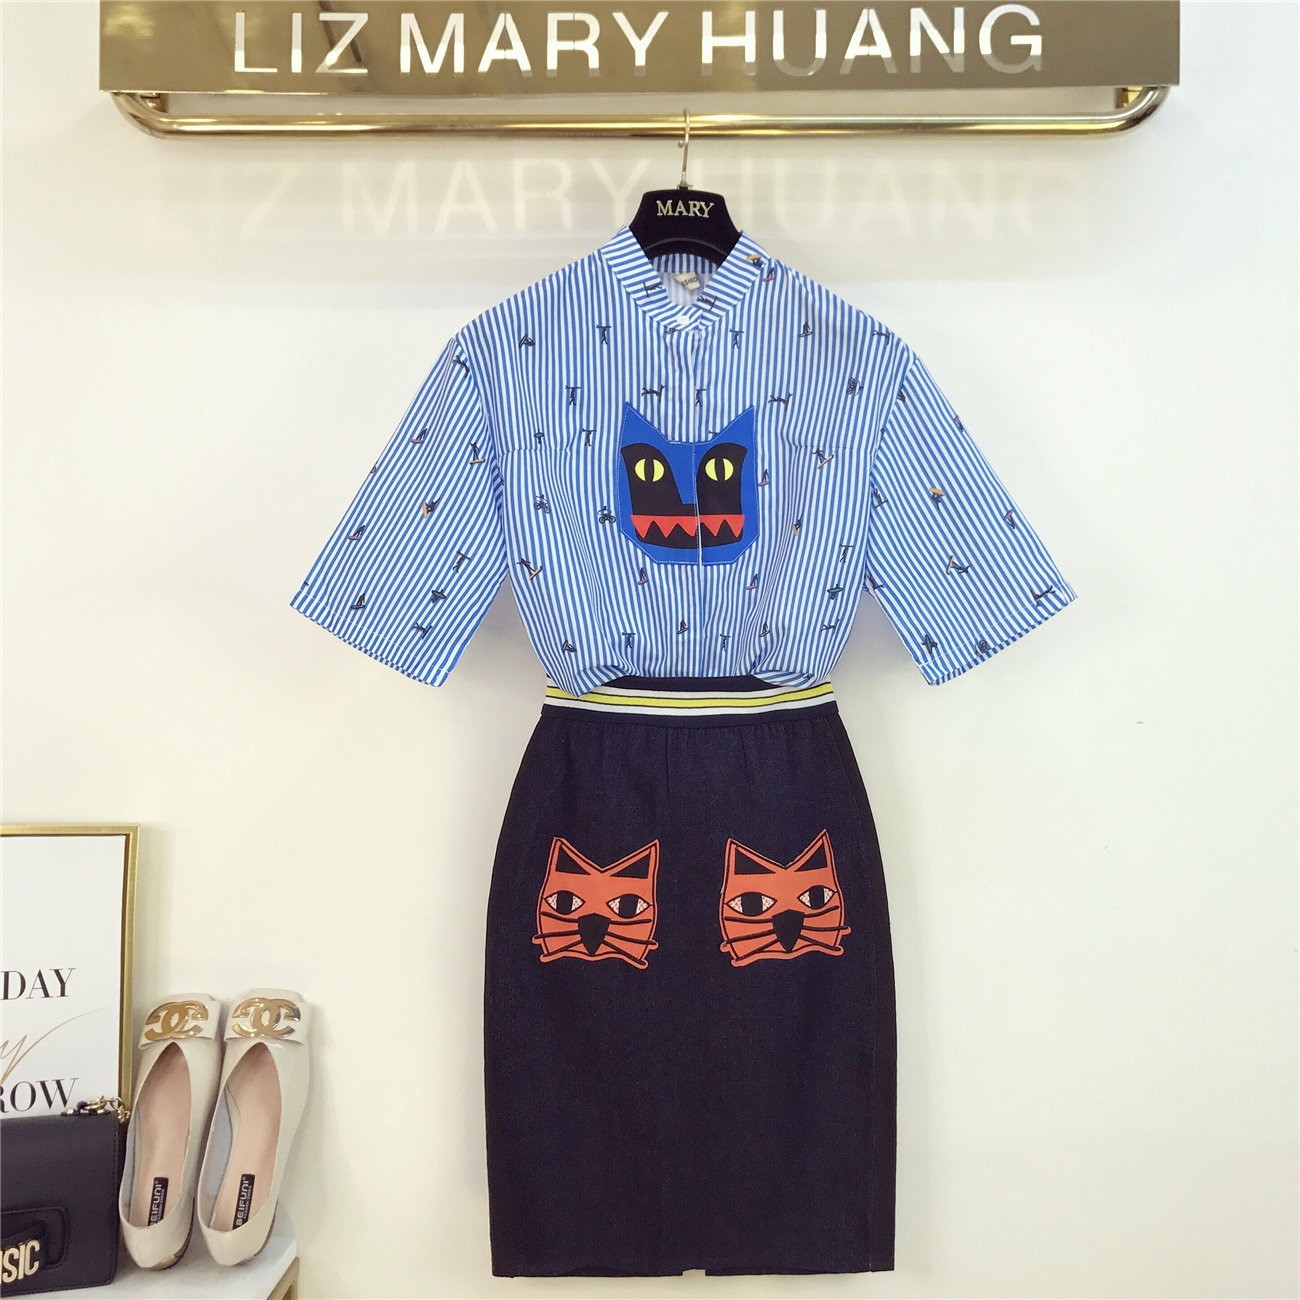 Harajuku Girls Lady Shirt Suit Summer Short Sleeve Print Striped Shirts+cat Embroidery Denim Skirt Set Women Casual 2 Piece Sets